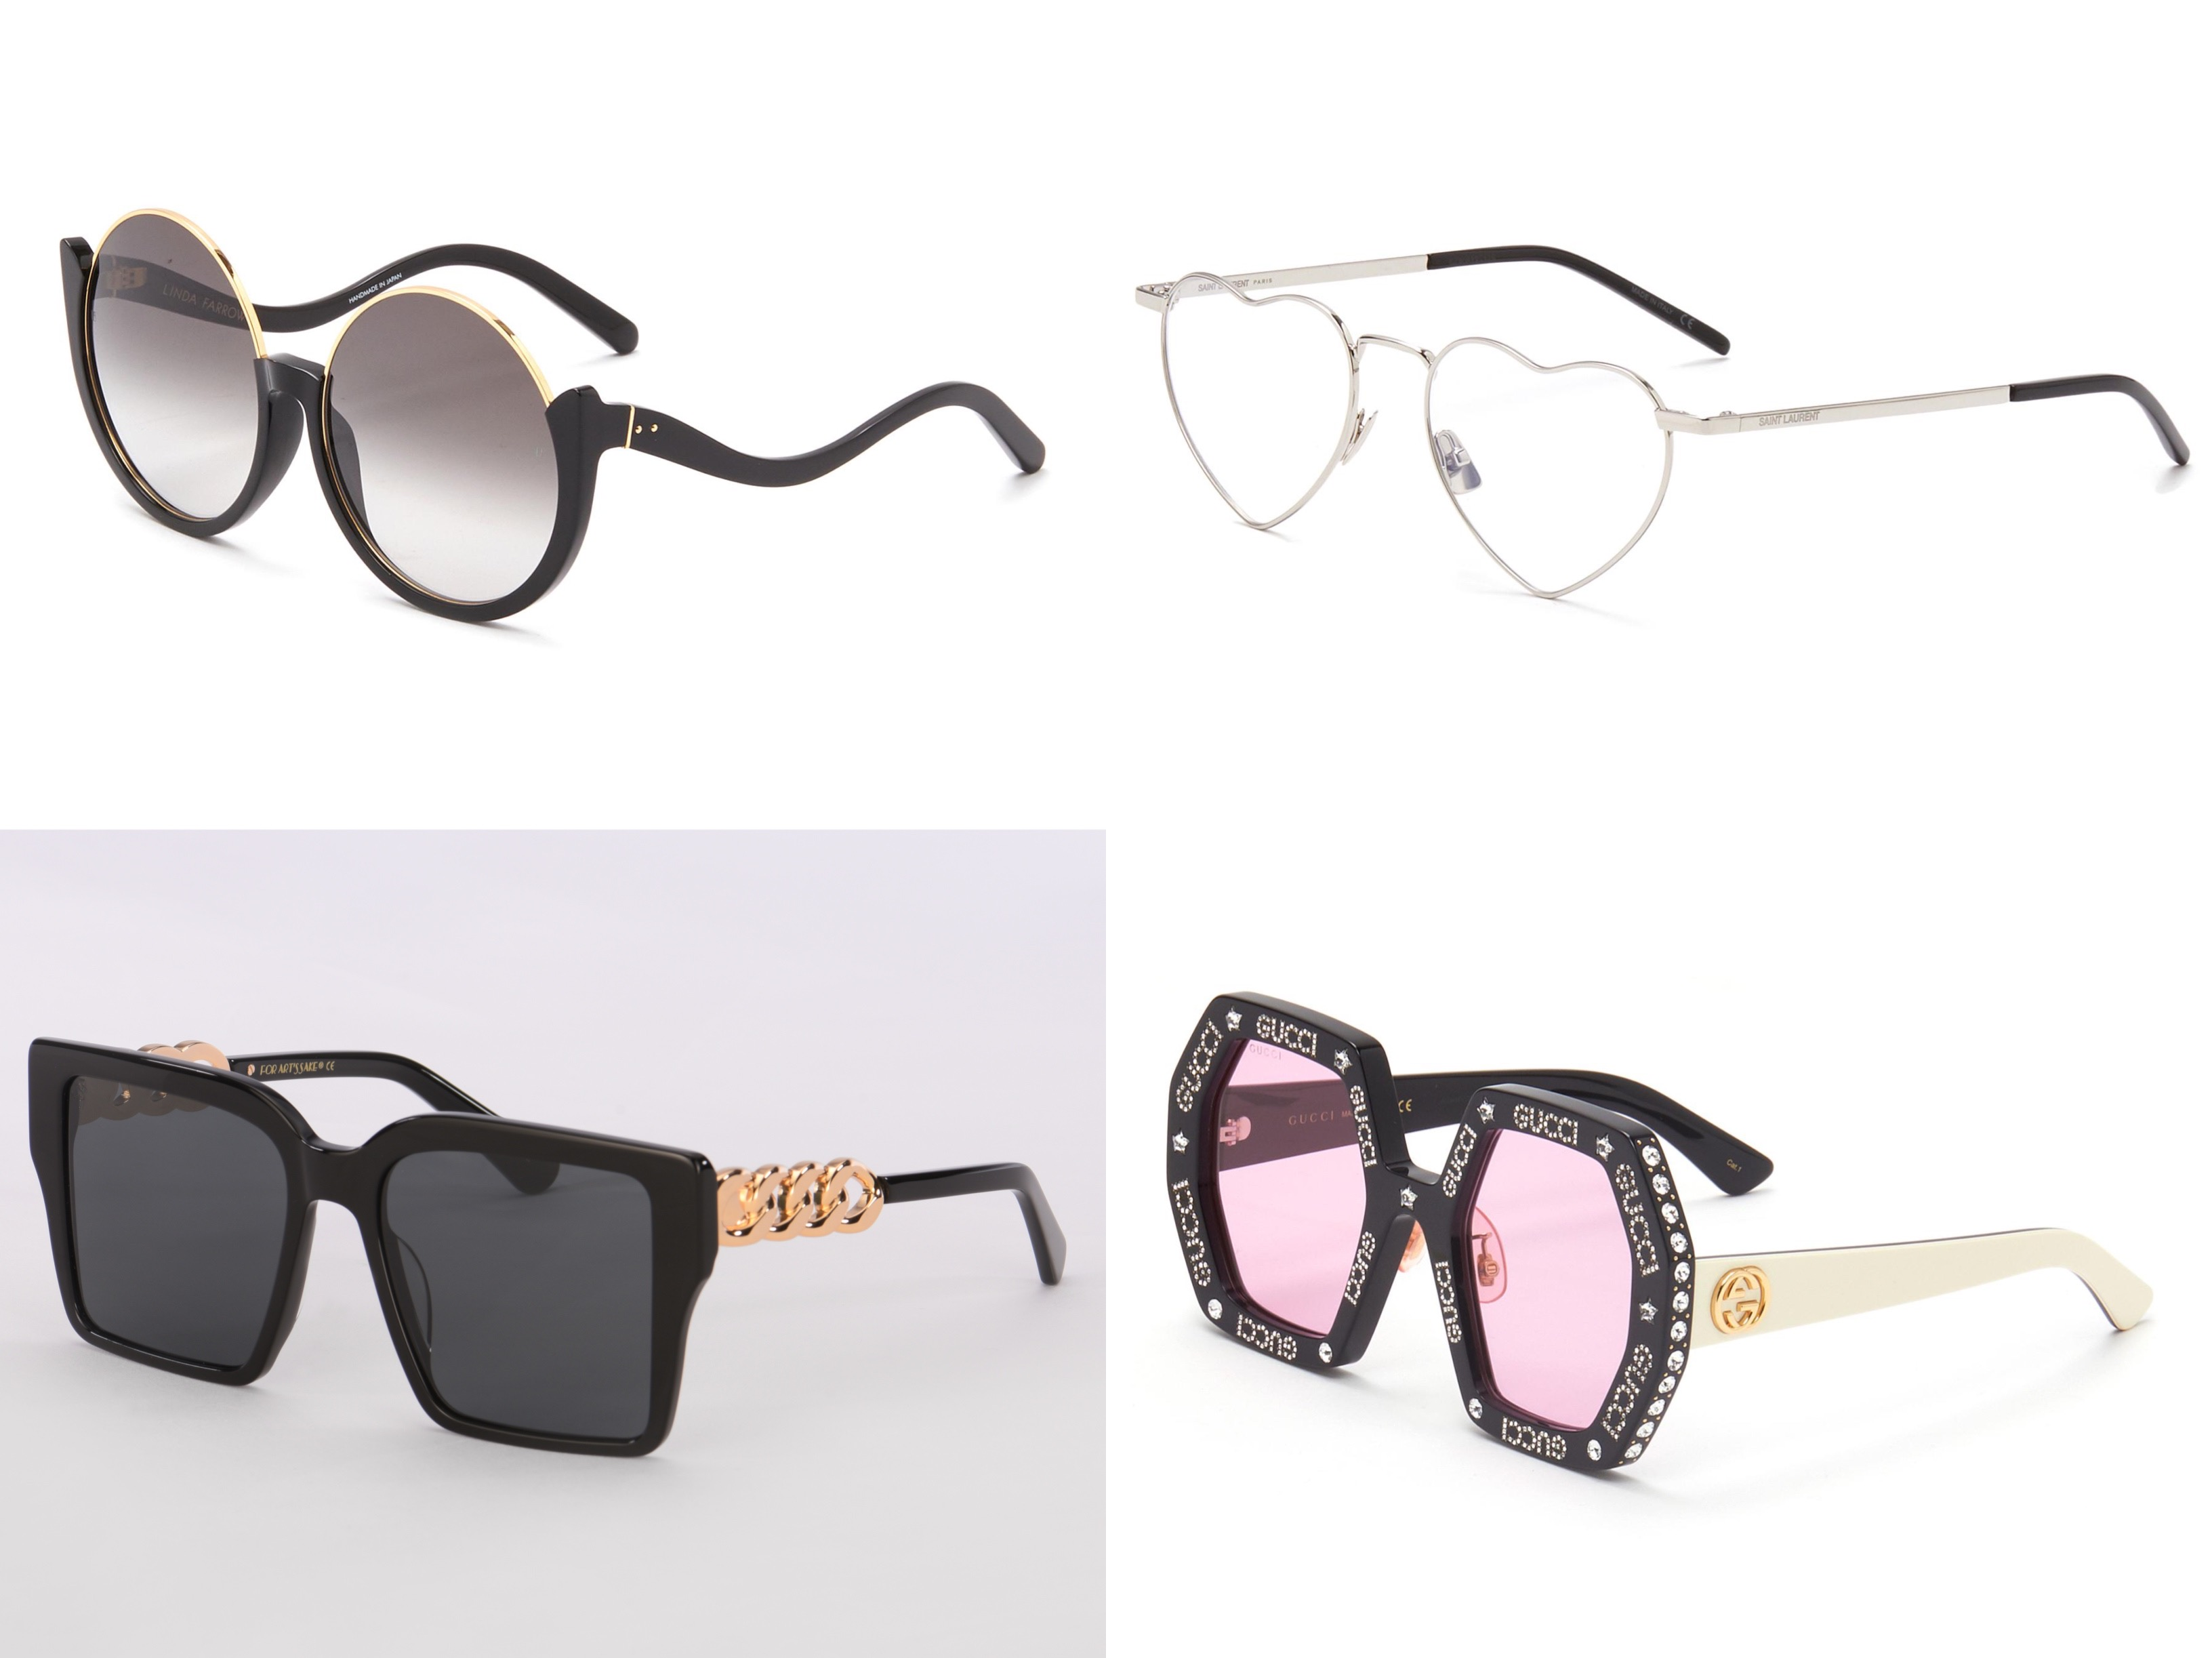 Eyewear styles from Linda Farrow, Saint Laurent, For Art's Sake, and Gucci.